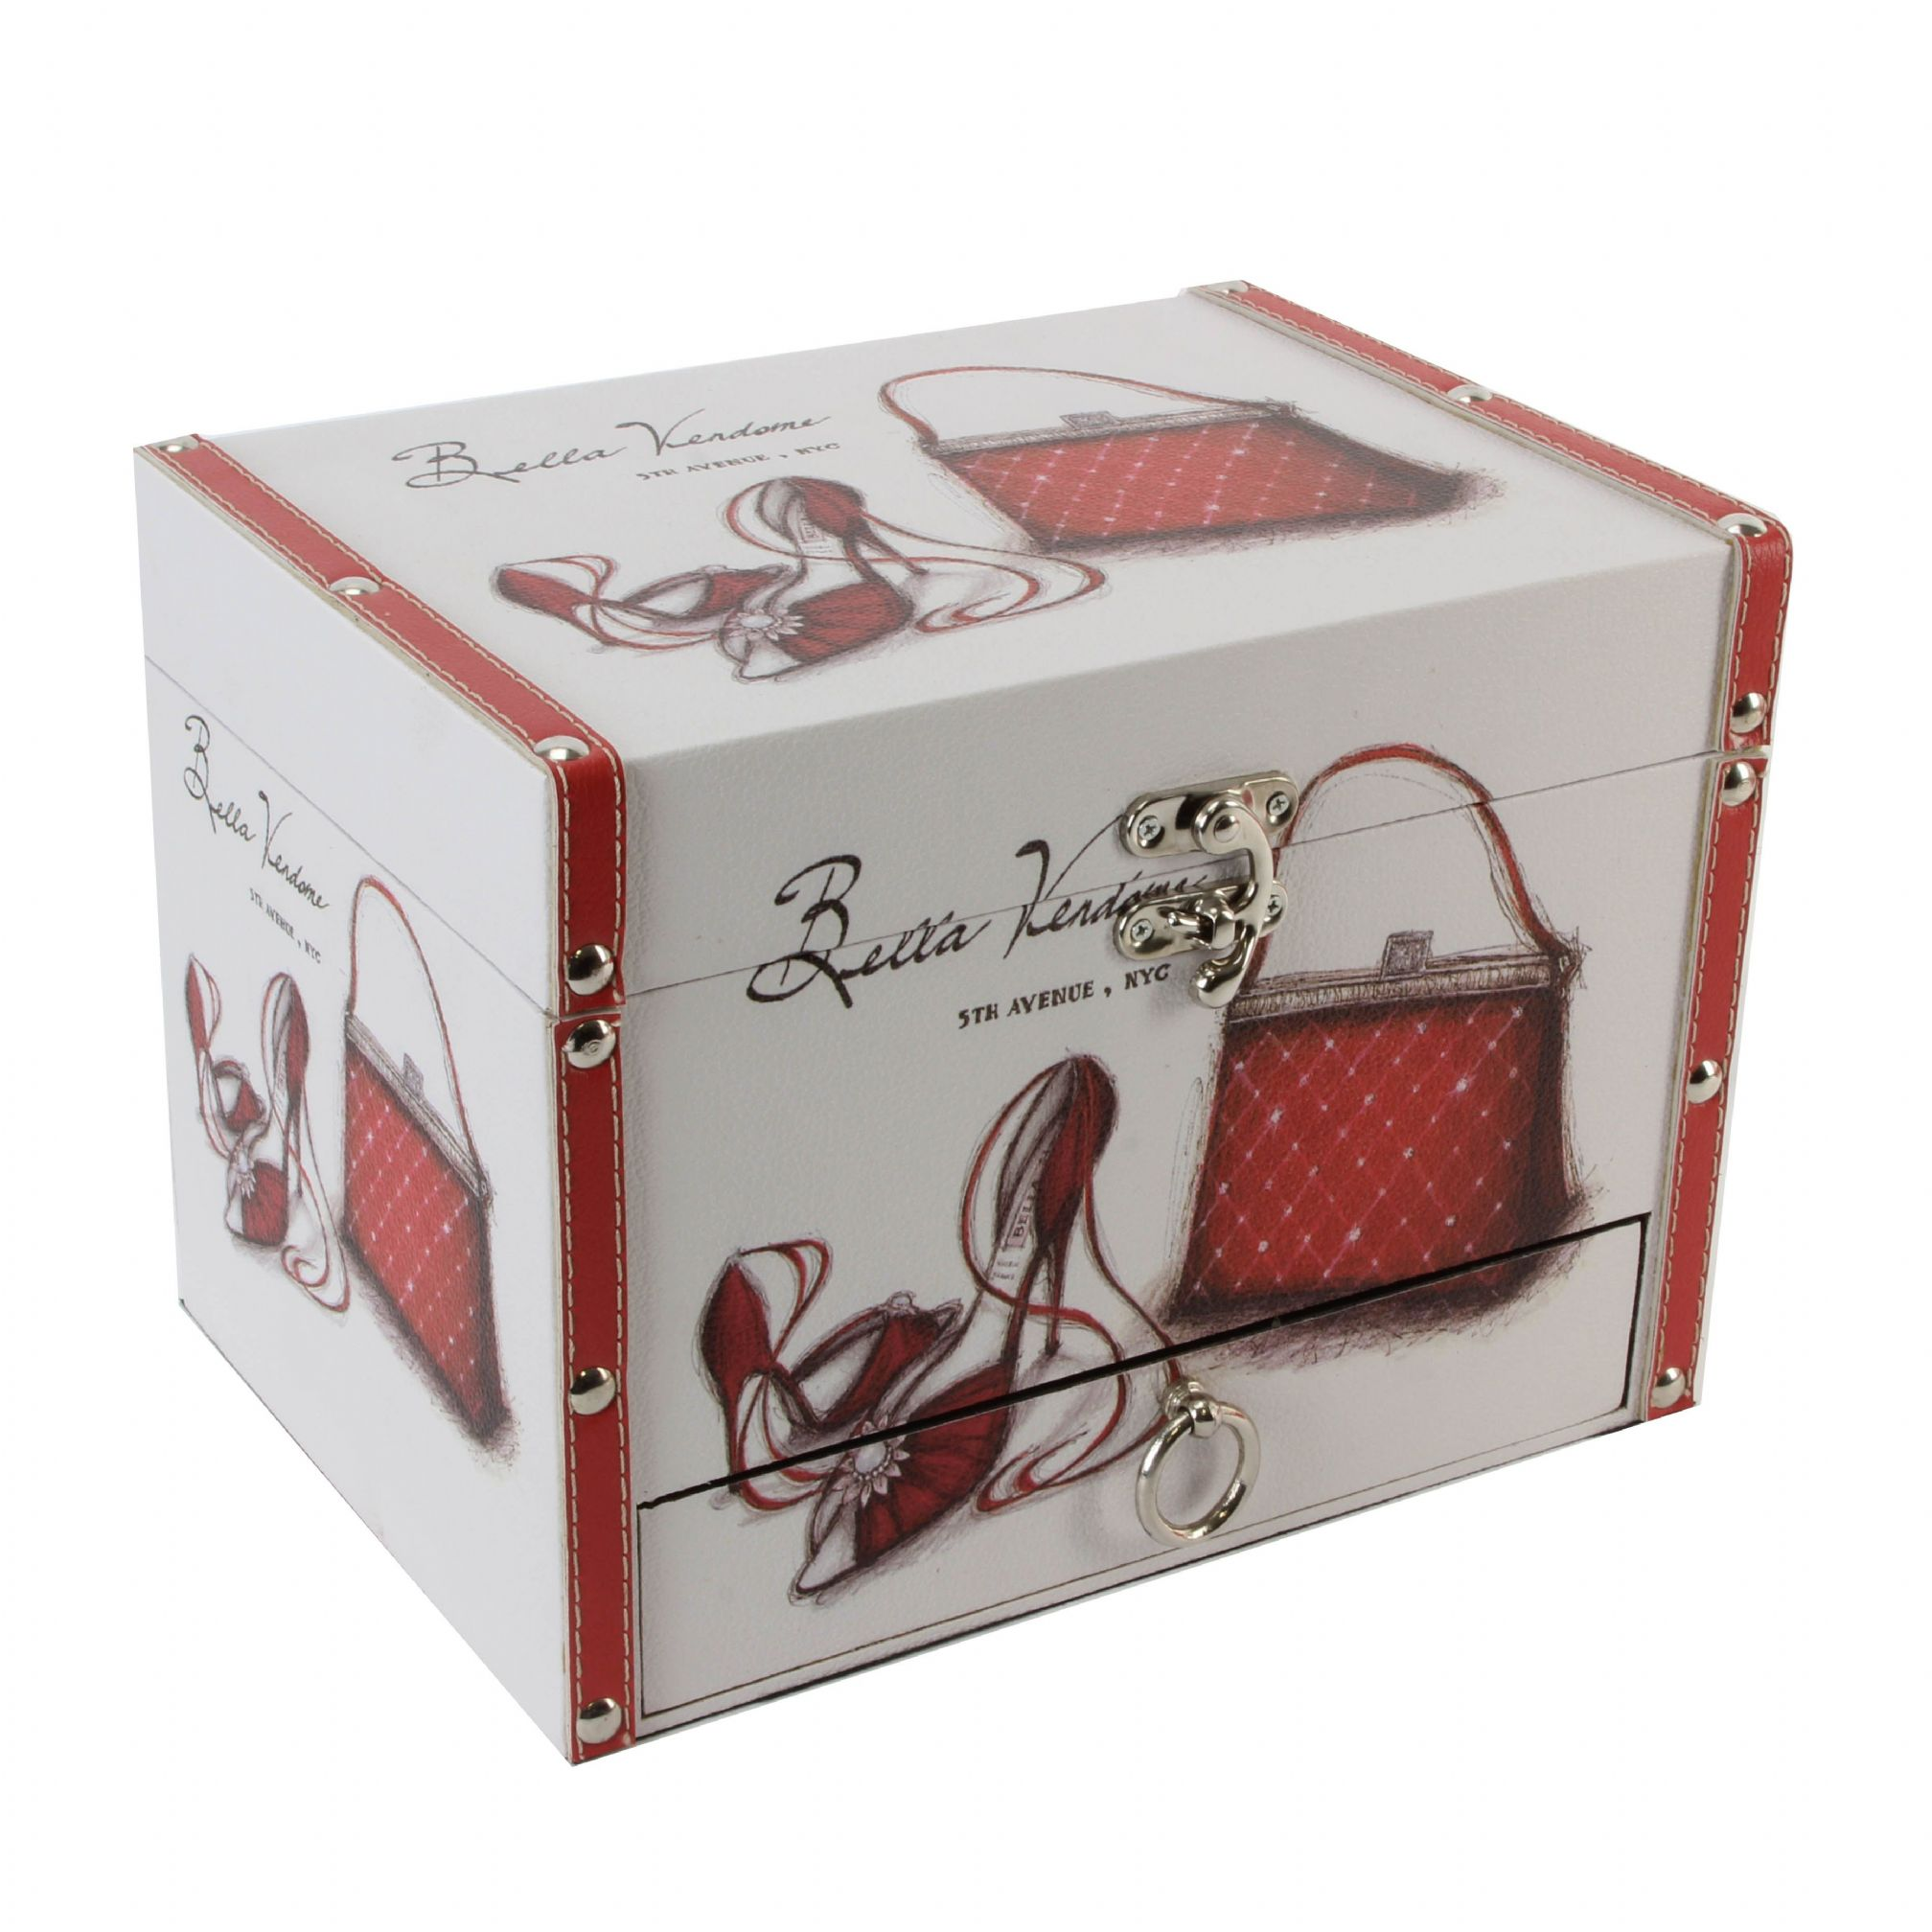 Decorative Storage Boxes Uk : Decorative storage box sophia large jewellery